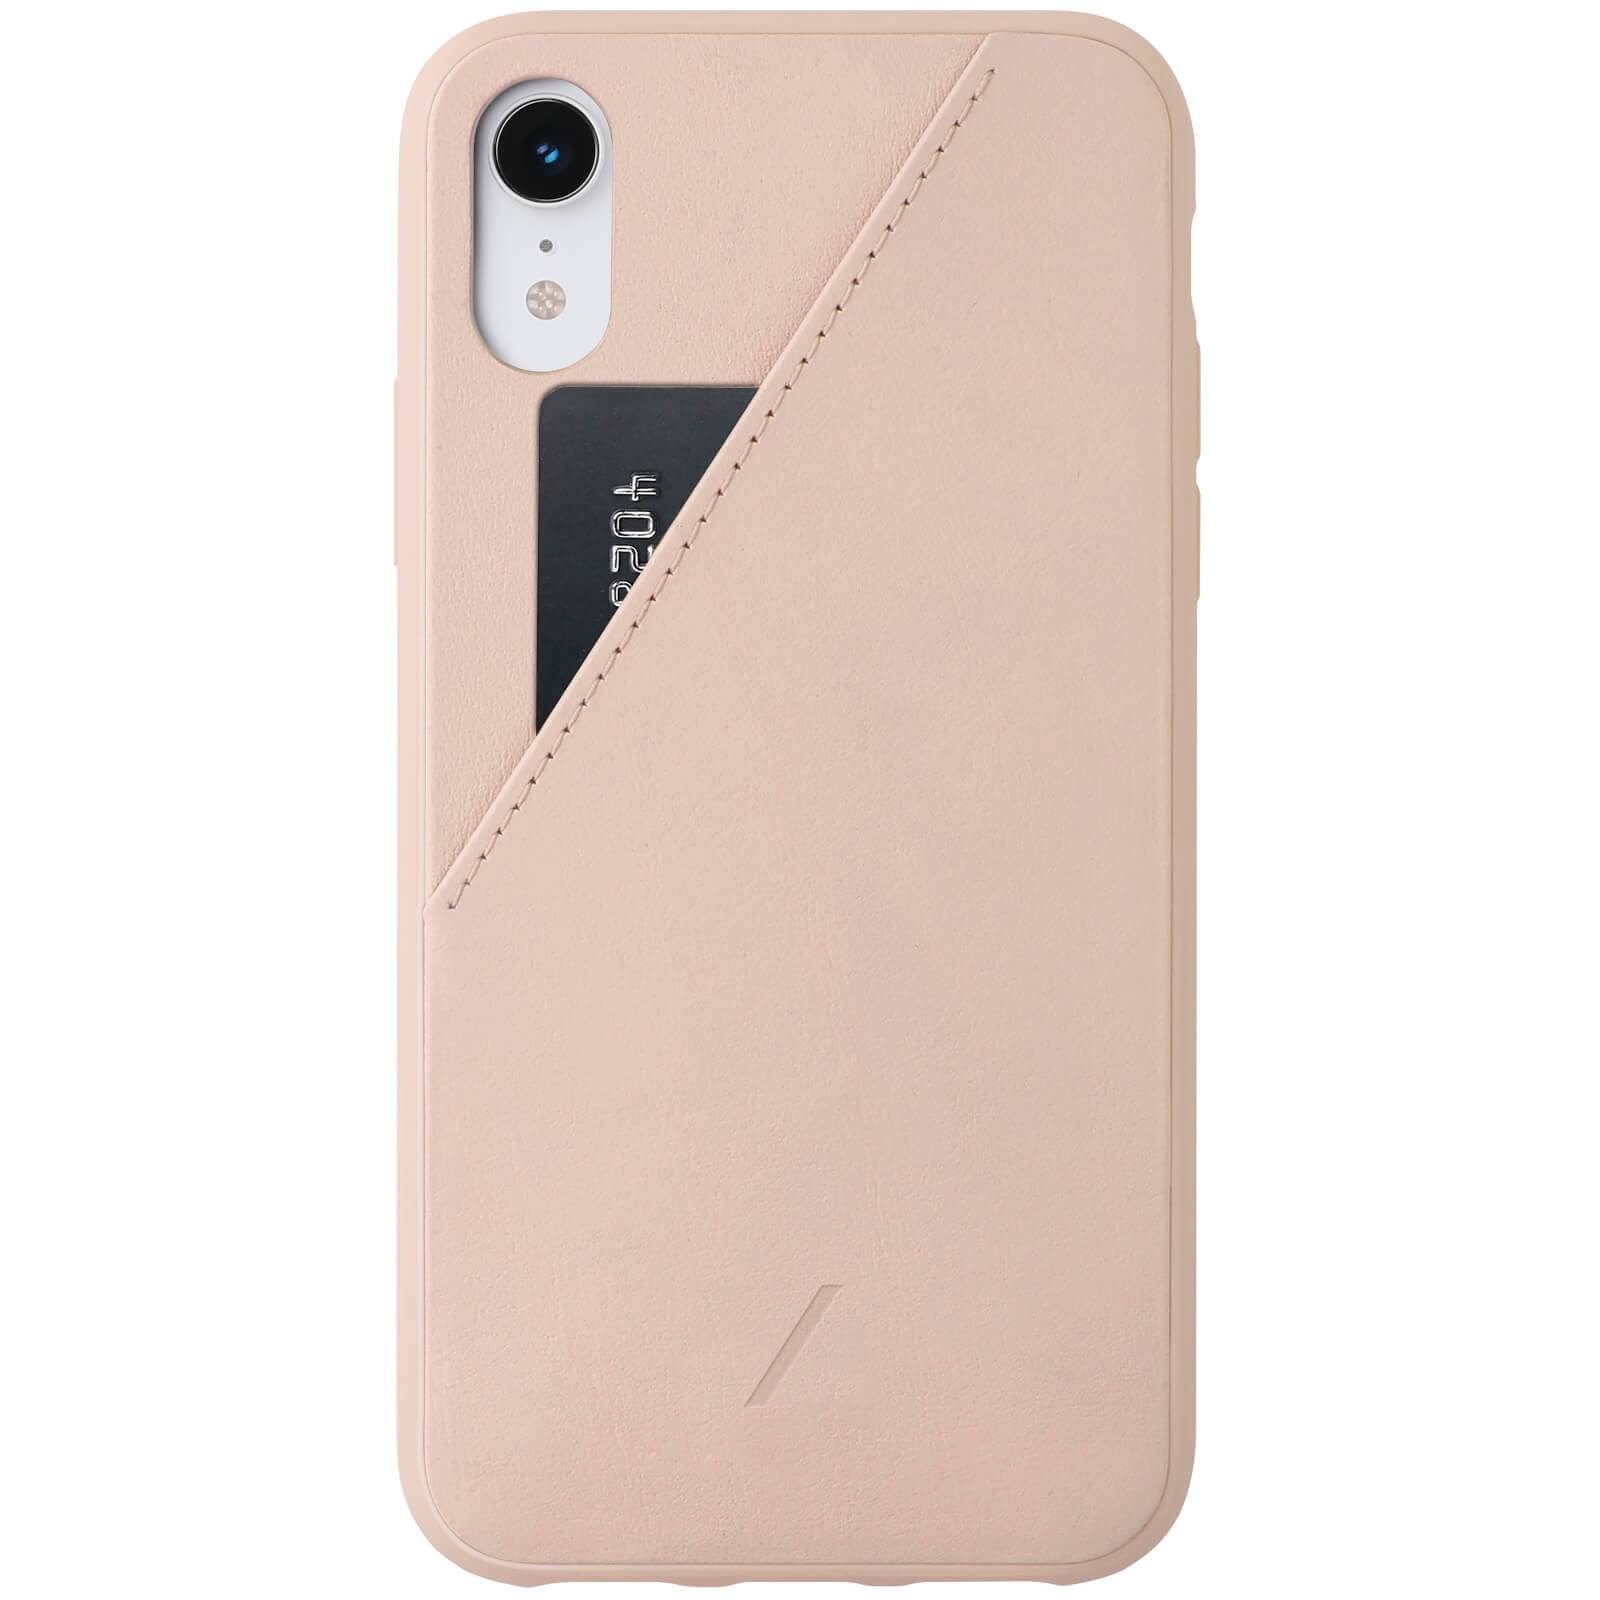 Native Union Clic Card iPhone XR Case - Rose